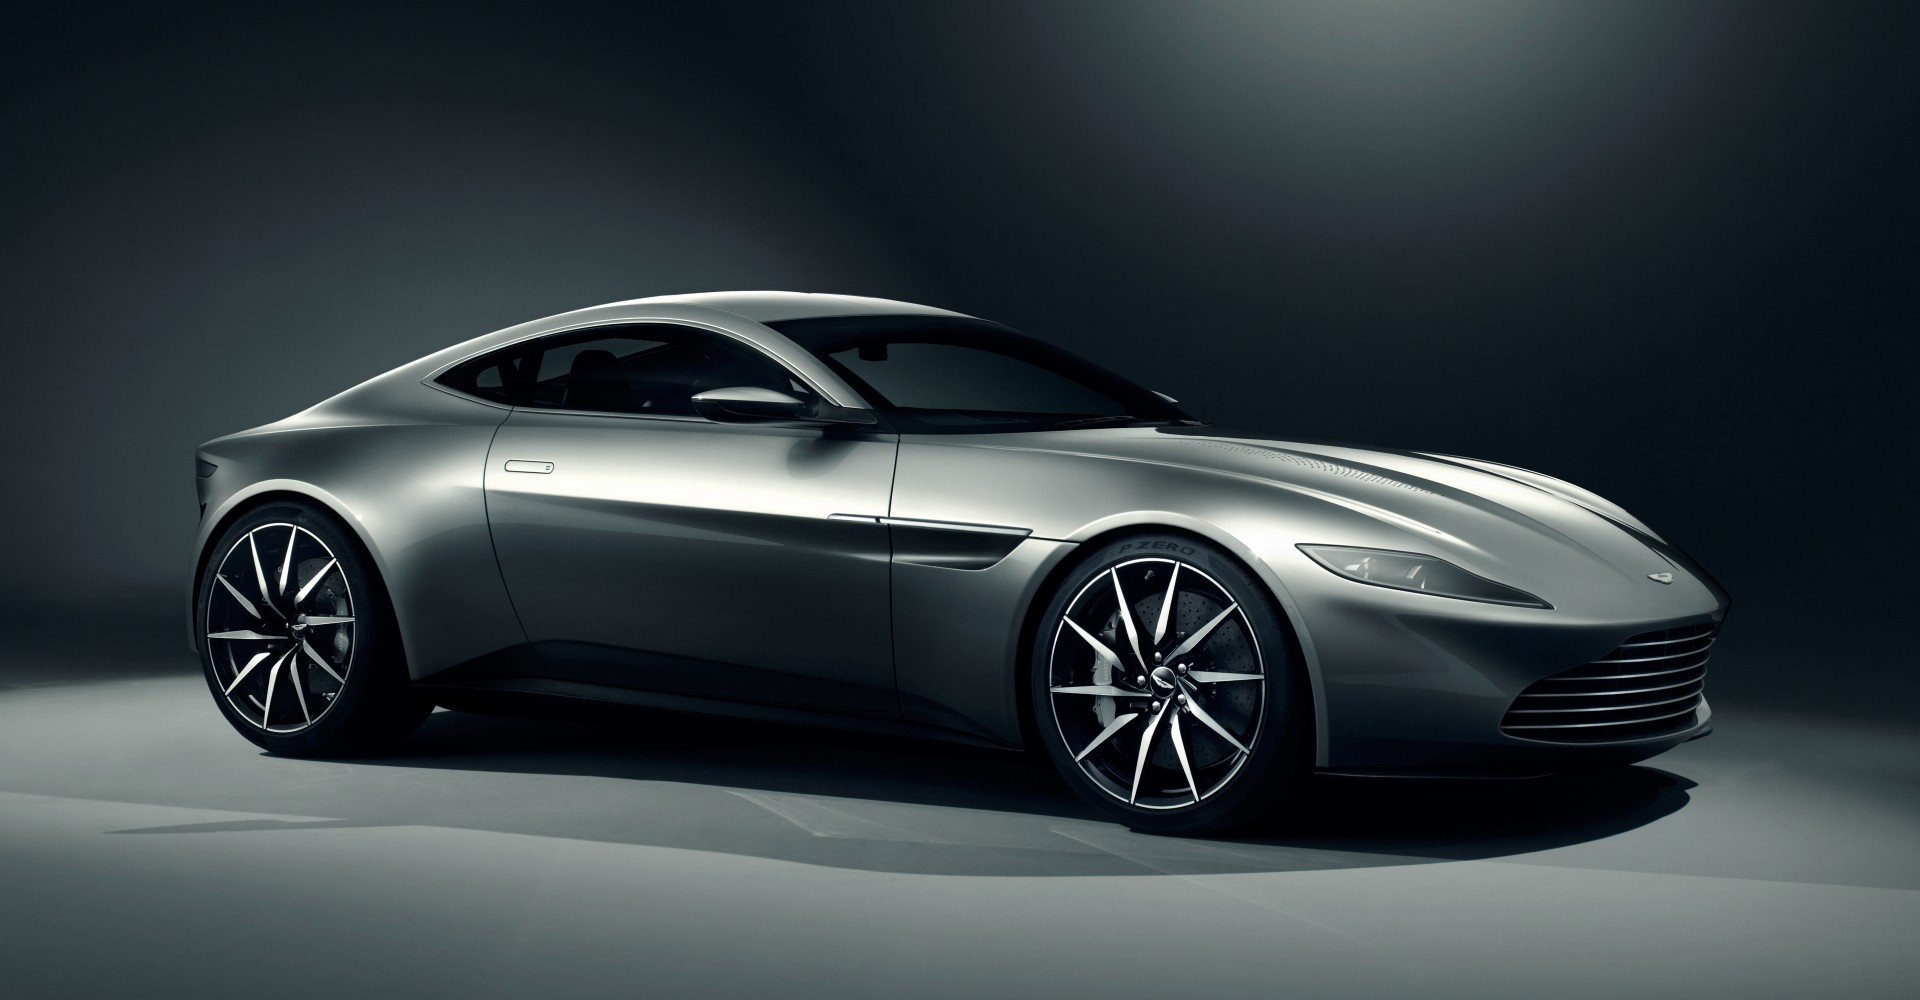 Bond Gets Busy In Aston Martin DB10 For New Movie